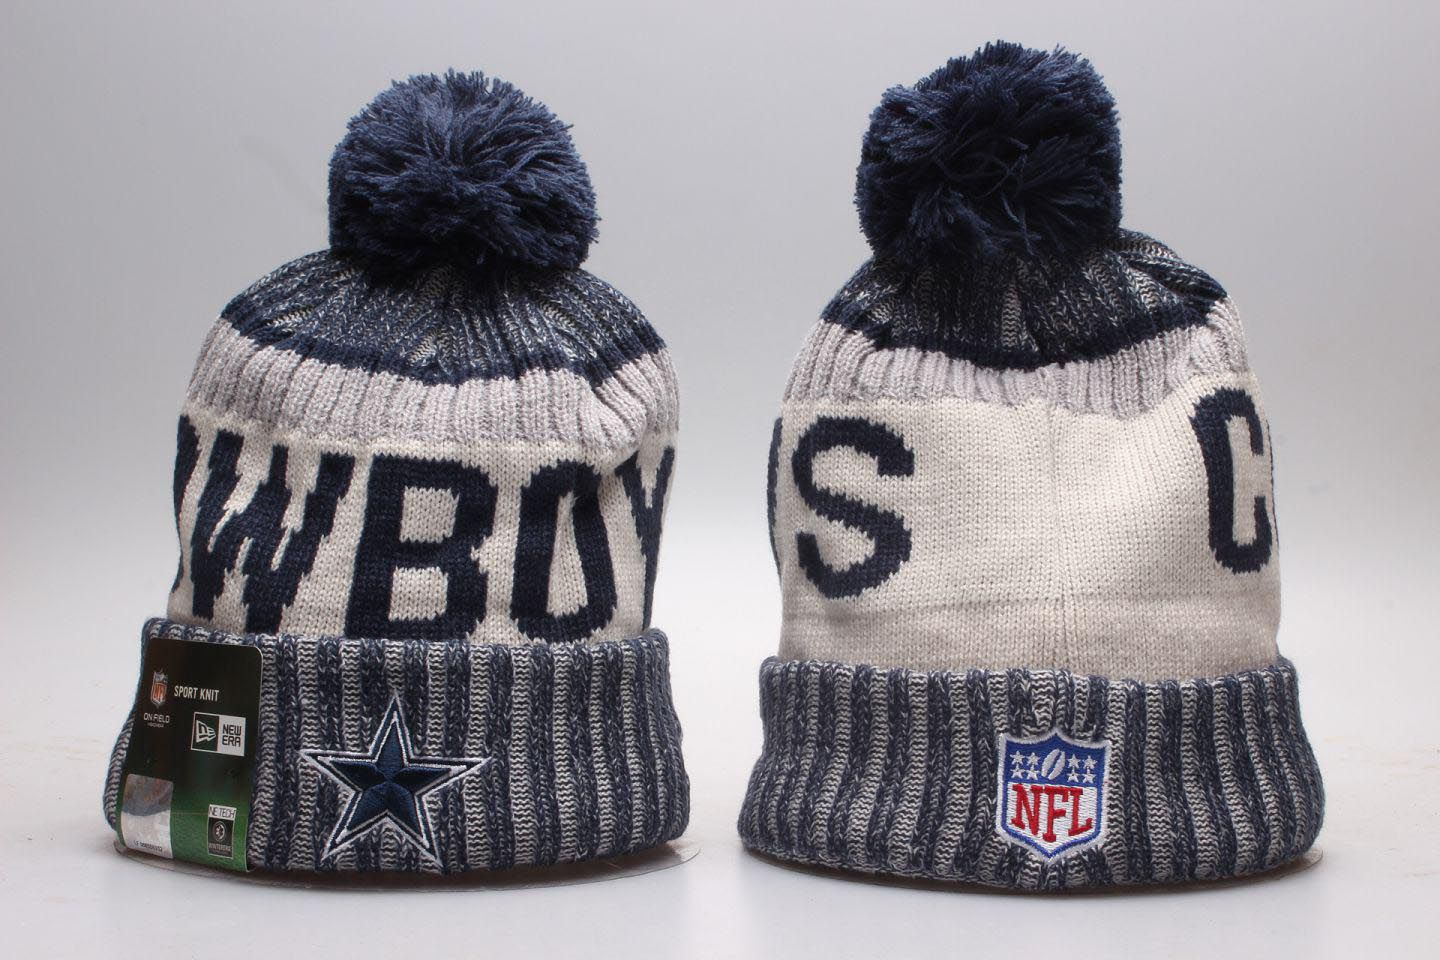 NFL Dallas cowboys Beanie hot hat13